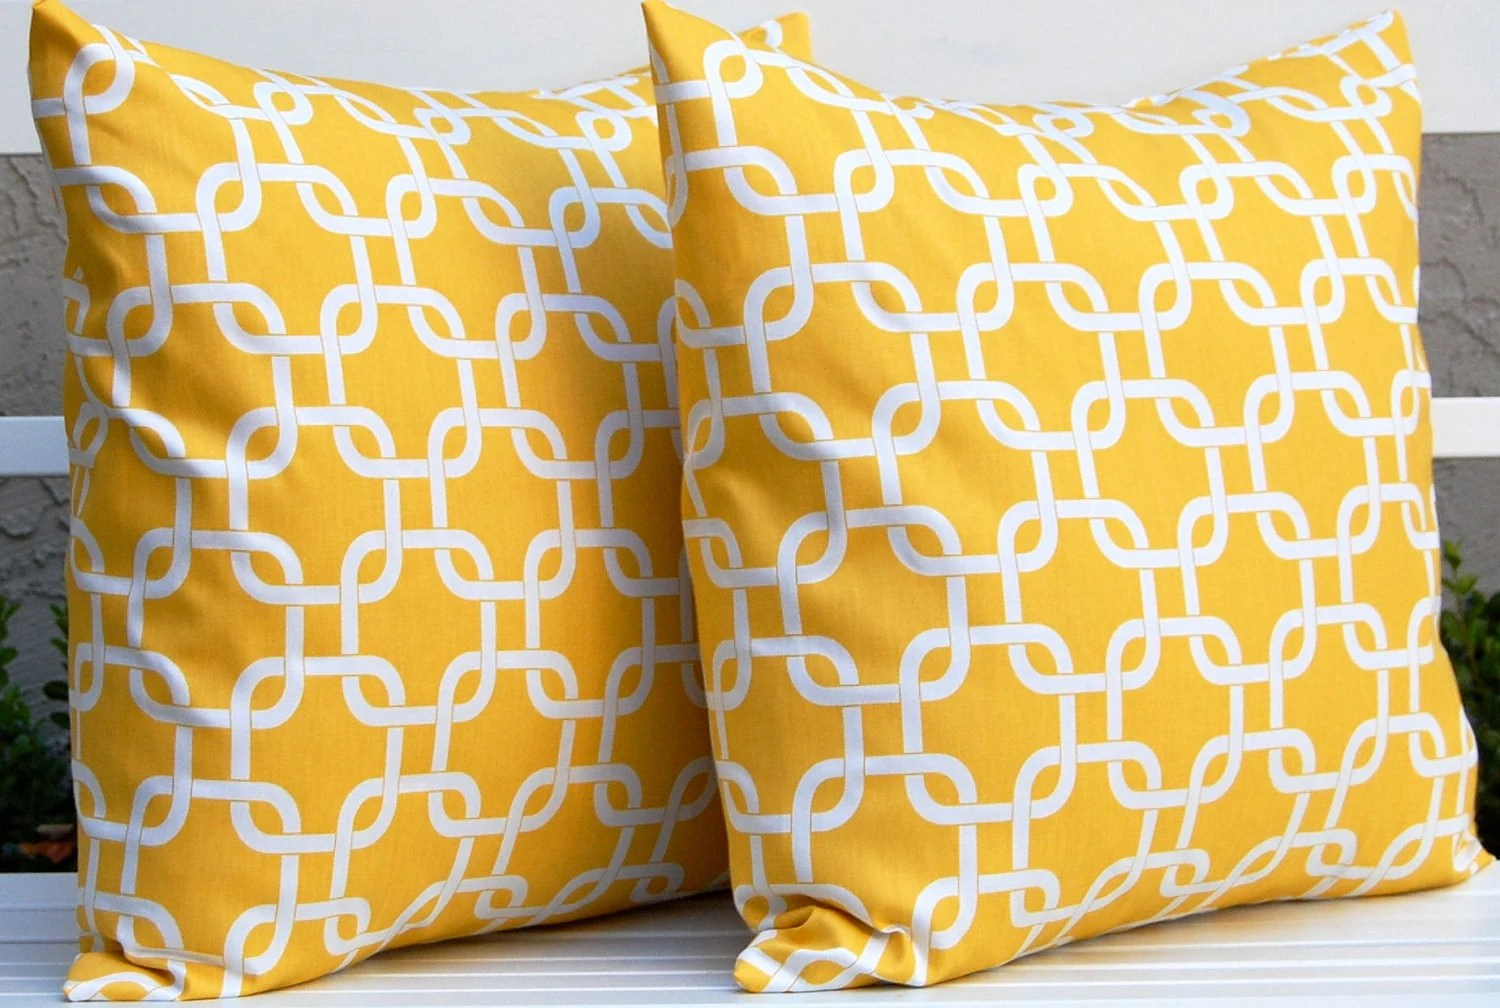 Pillows Online Sale Decorative Pillows On Sale